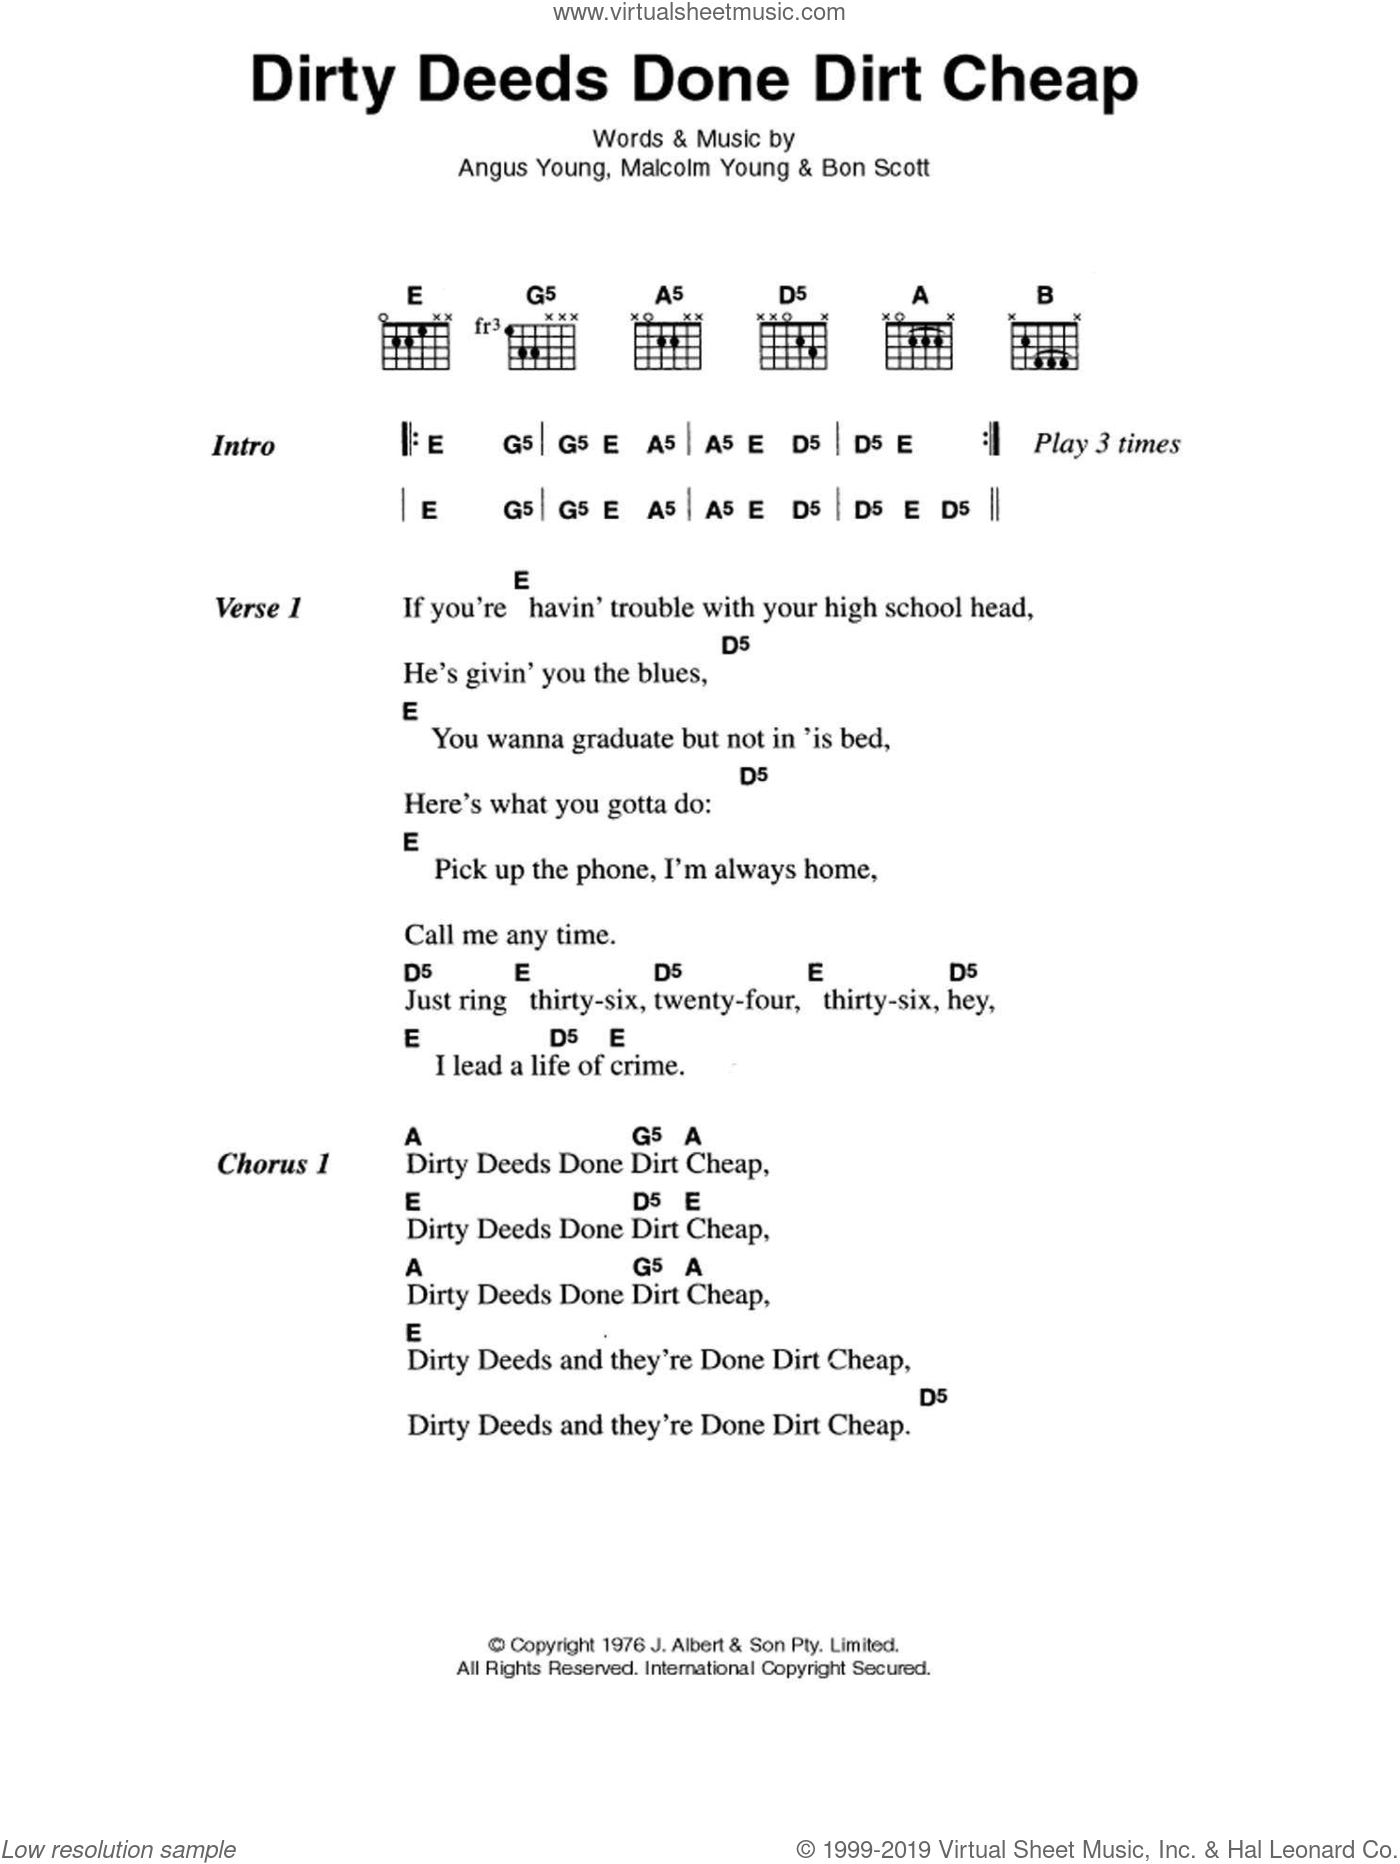 Dirty Deeds Done Dirt Cheap sheet music for guitar (chords) by AC/DC, intermediate